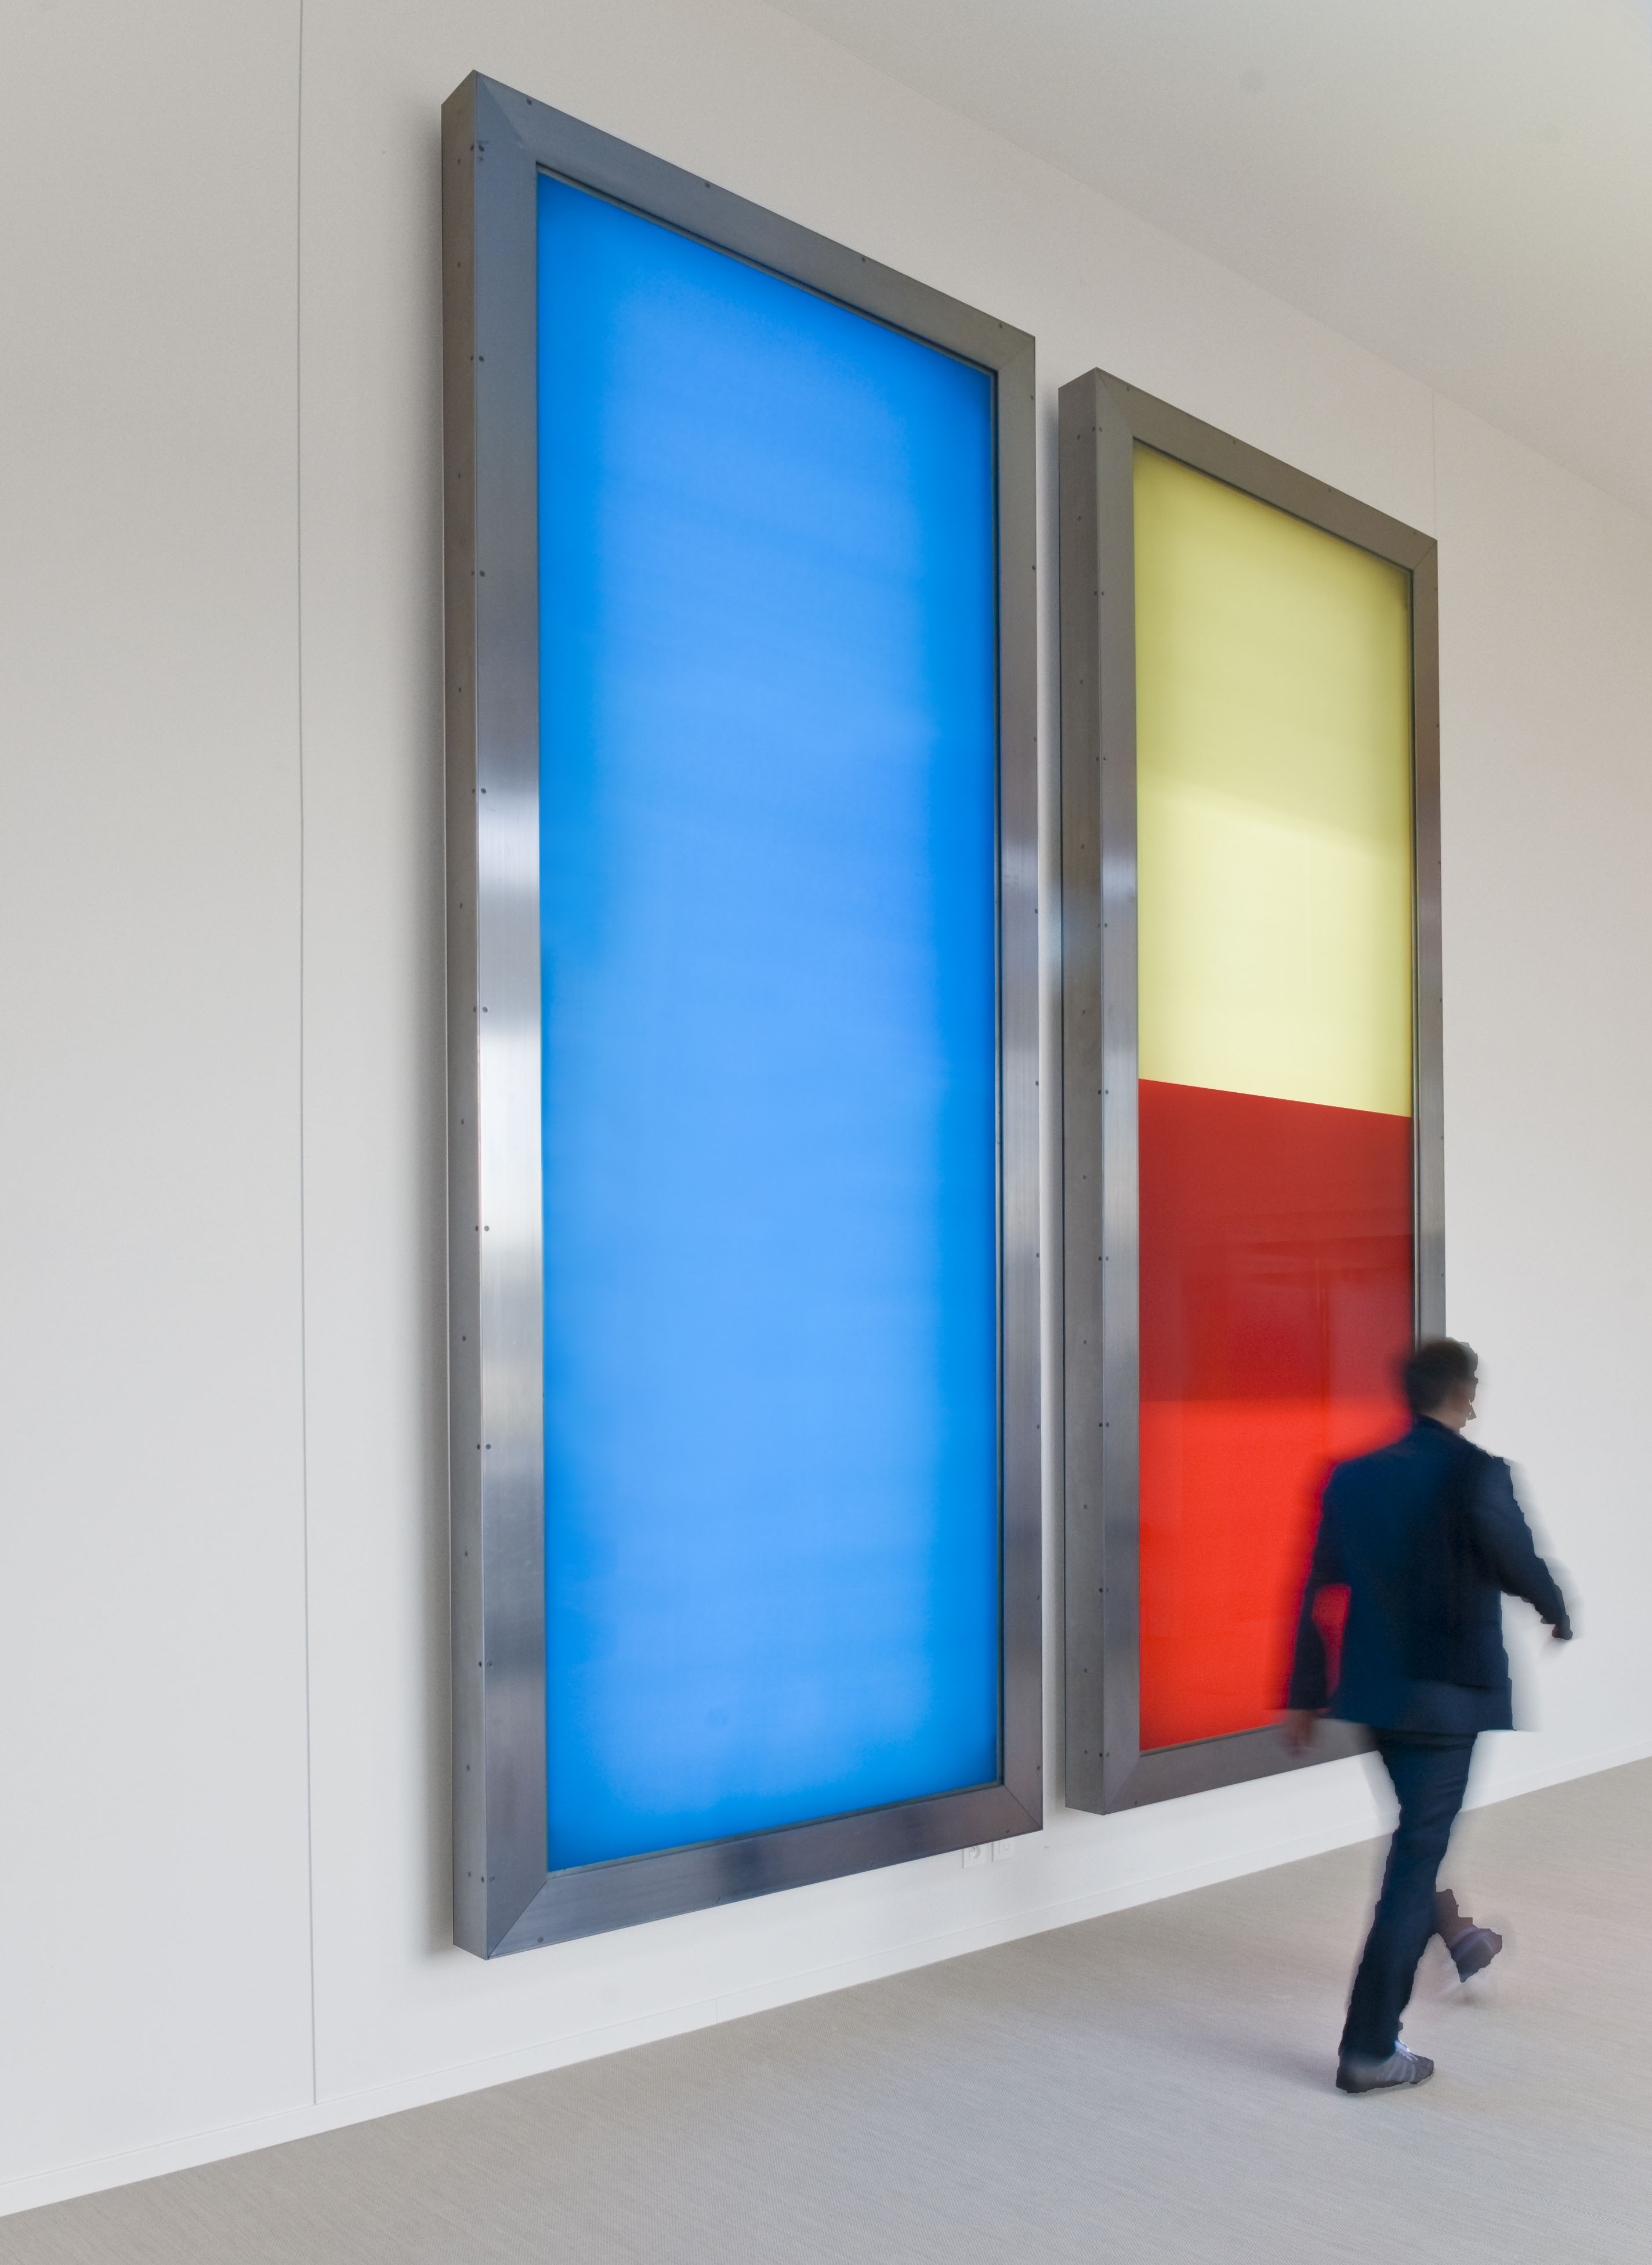 realities:united, 2x5: Two 14 x 5 foot light boxes will wash the entrance of the Granoff Center in a range of colors, from white, to rose, blue, mustard, and red.